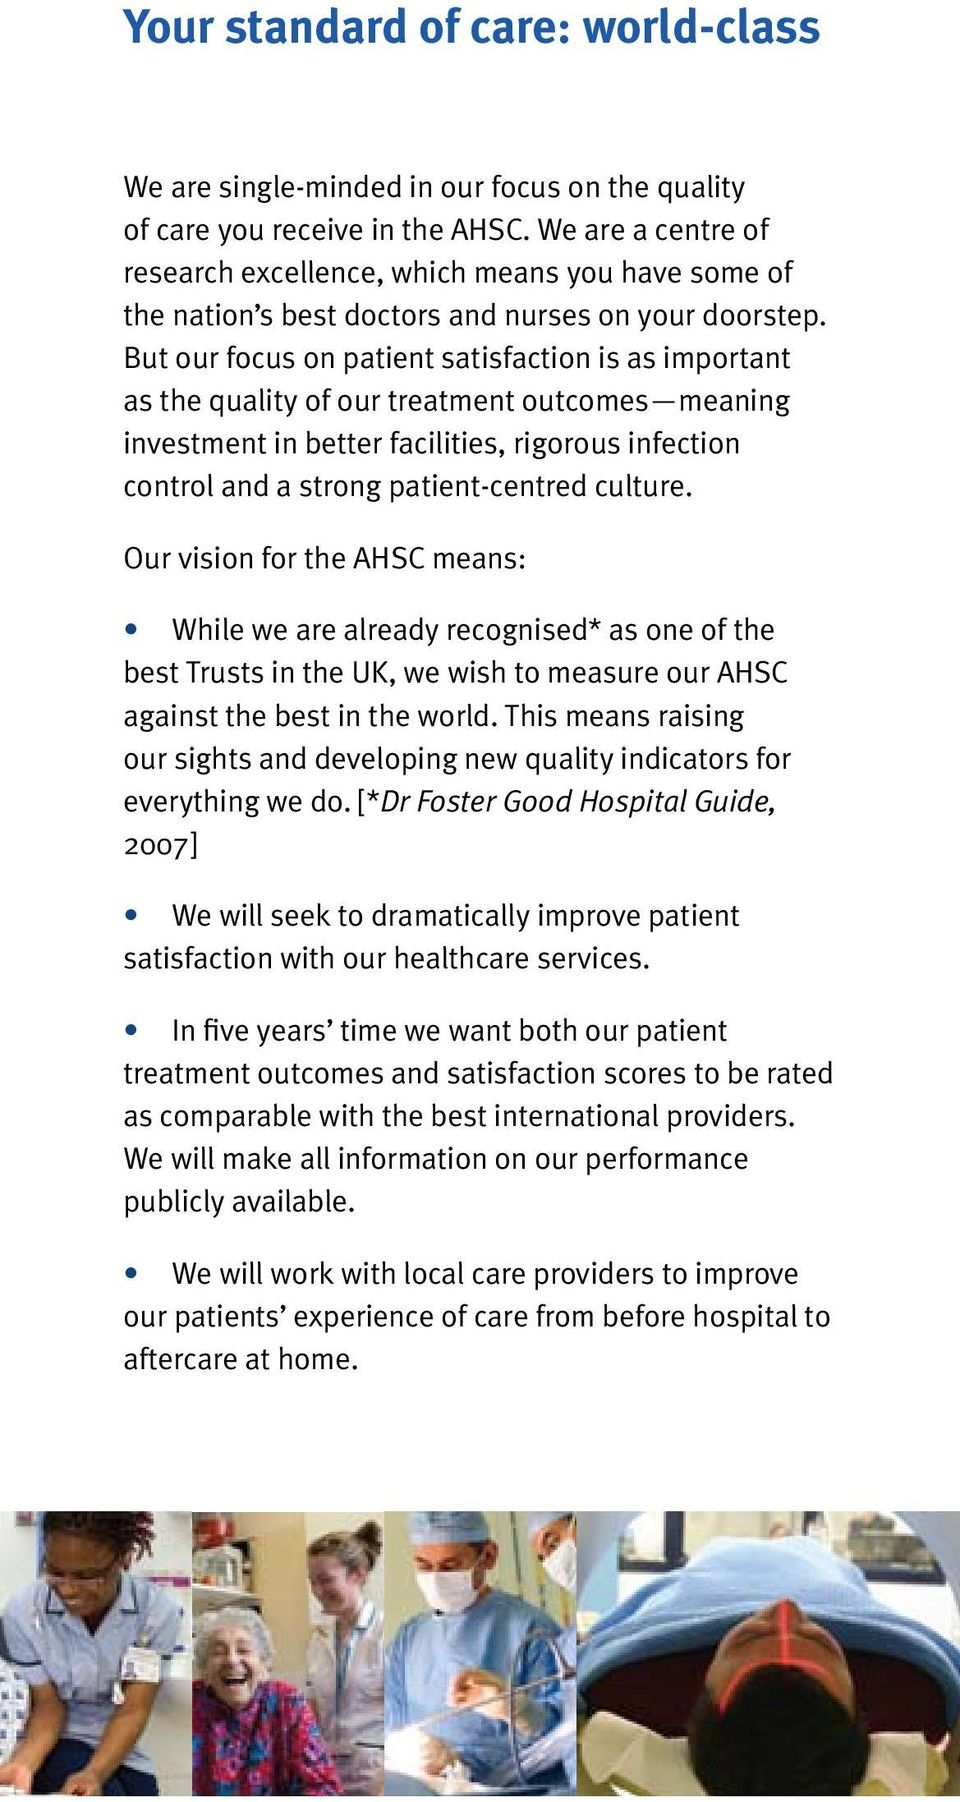 But our focus on patient satisfaction is as important as the quality of our treatment outcomes meaning investment in better facilities, rigorous infection control and a strong patient-centred culture.